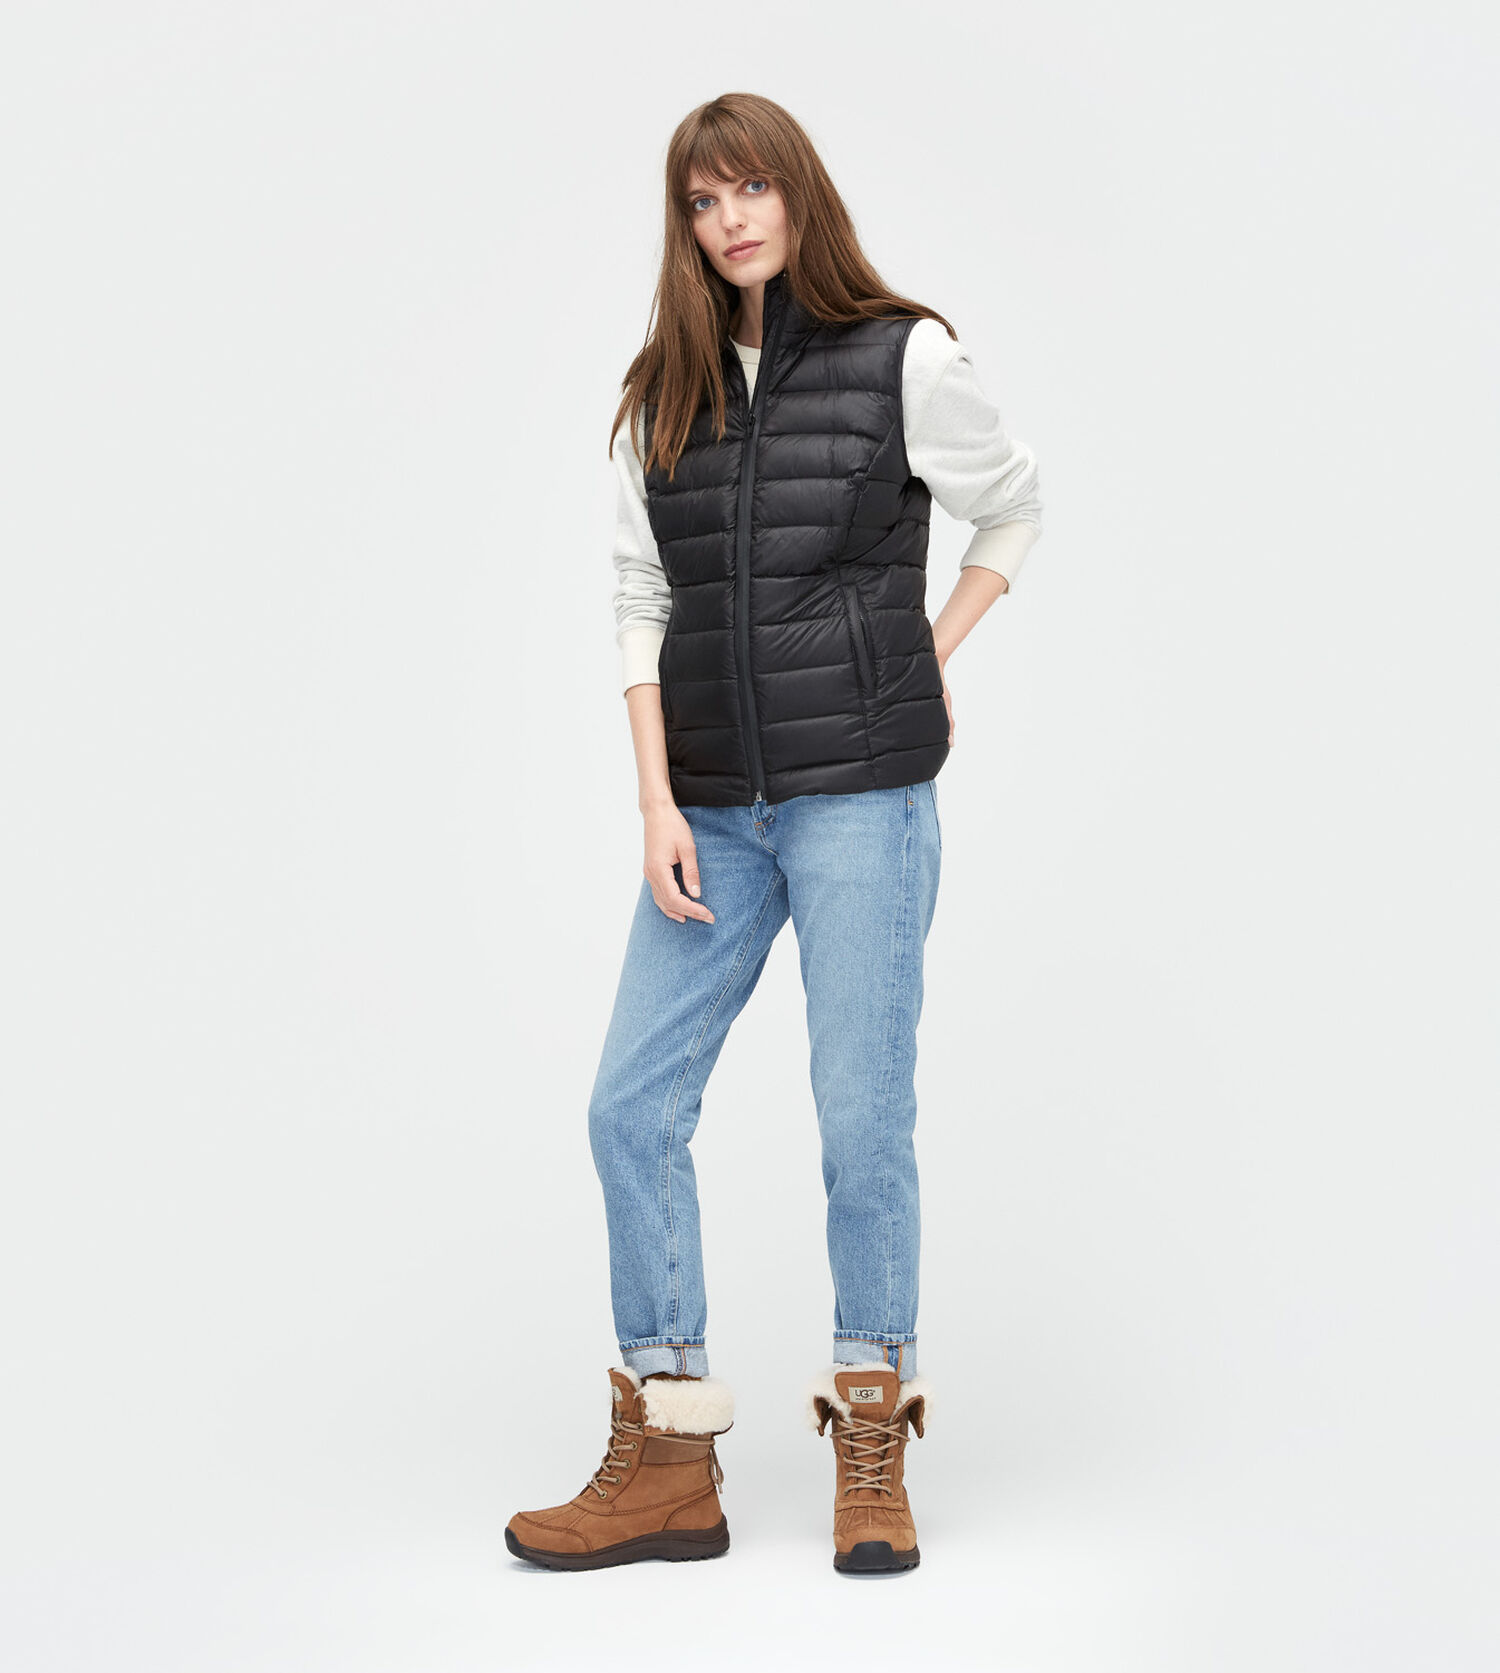 fc21072dab0 Women's Share this product Adirondack Parka